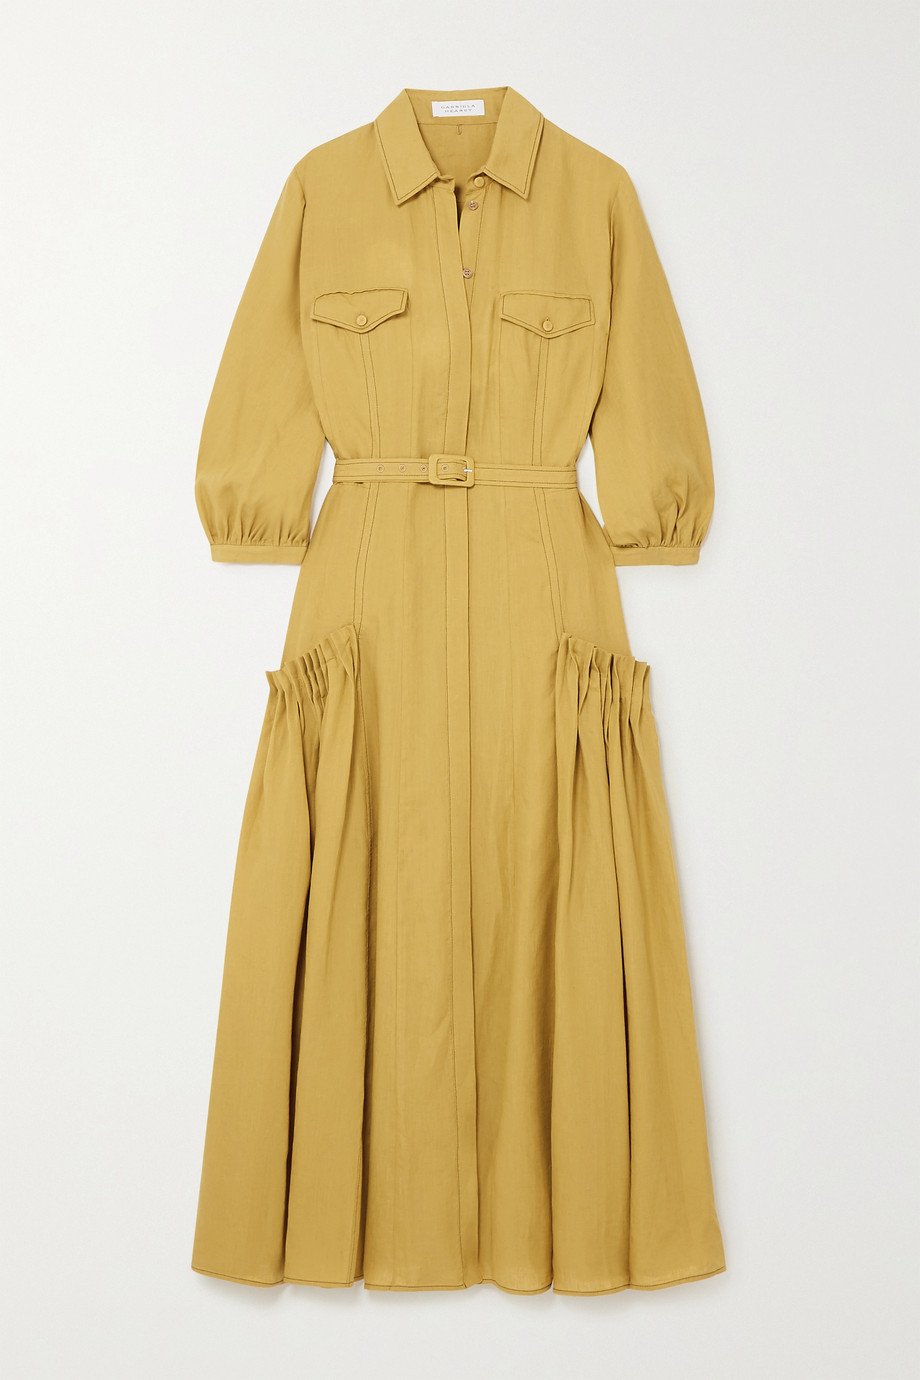 Gabriela Hearst Woodward belted gathered linen shirt dress